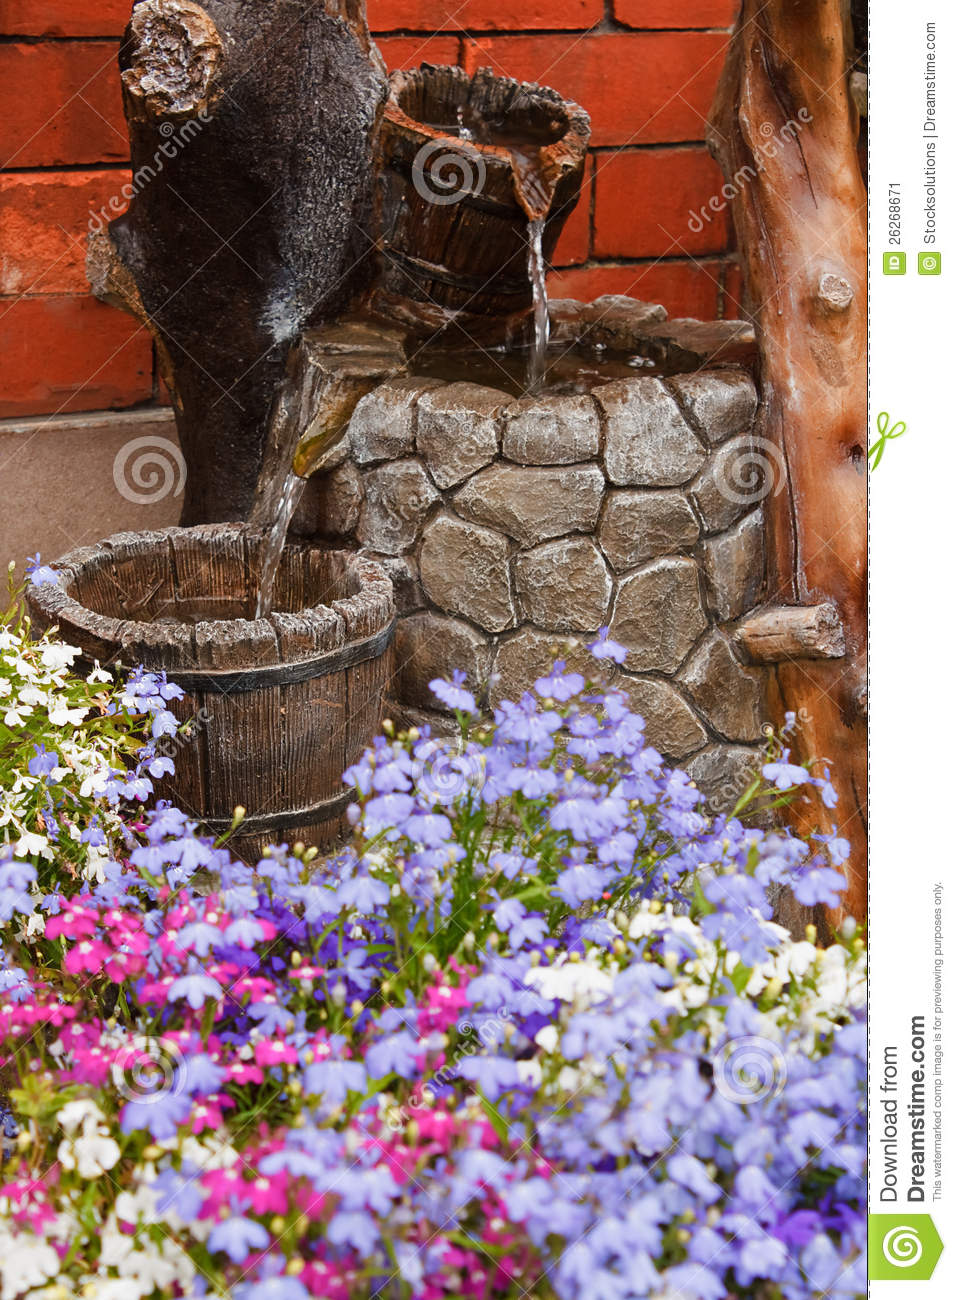 Ornamental garden water feature royalty free stock for Ornamental garden features